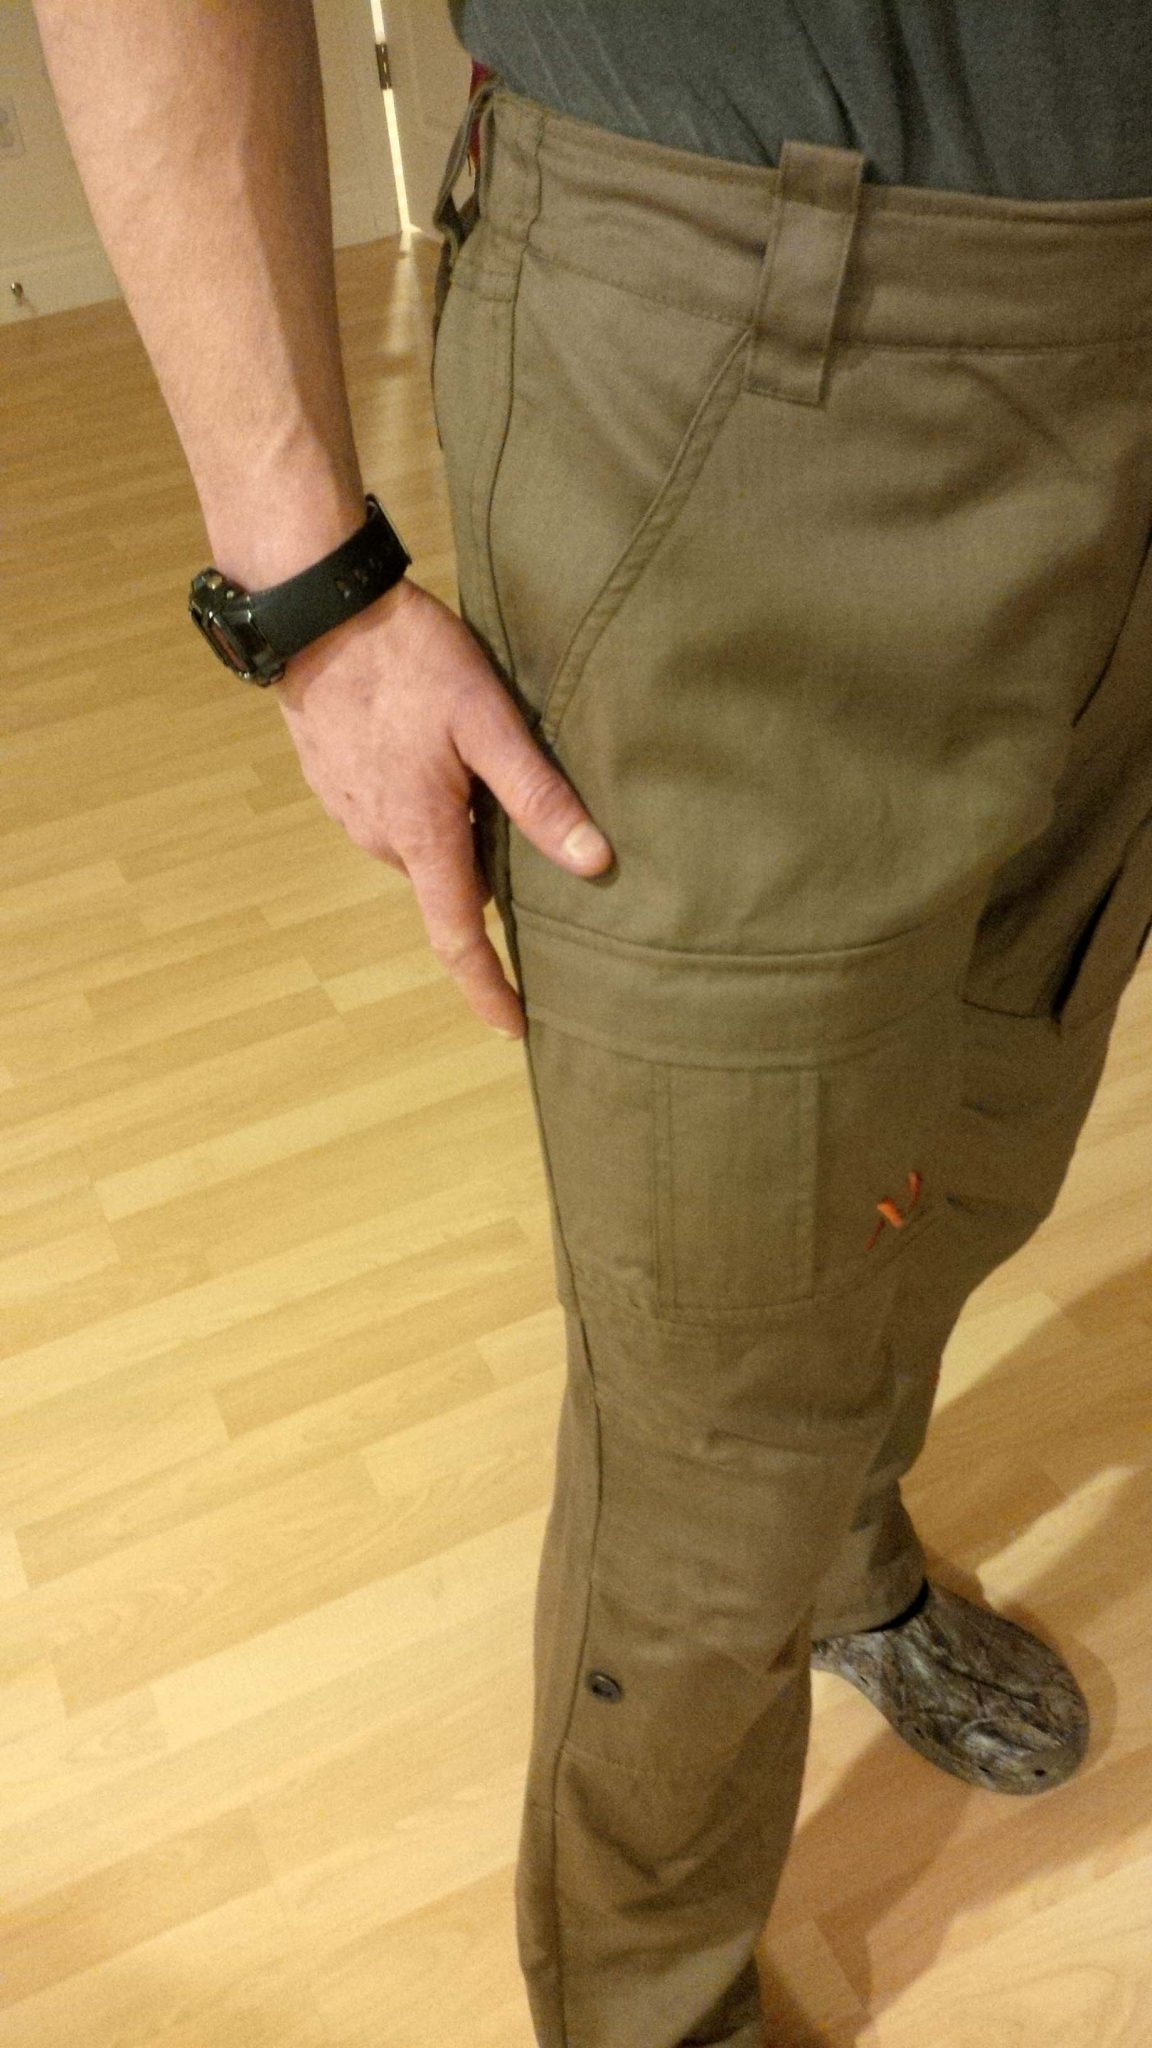 Kanab Pants - Forward cargo pockets